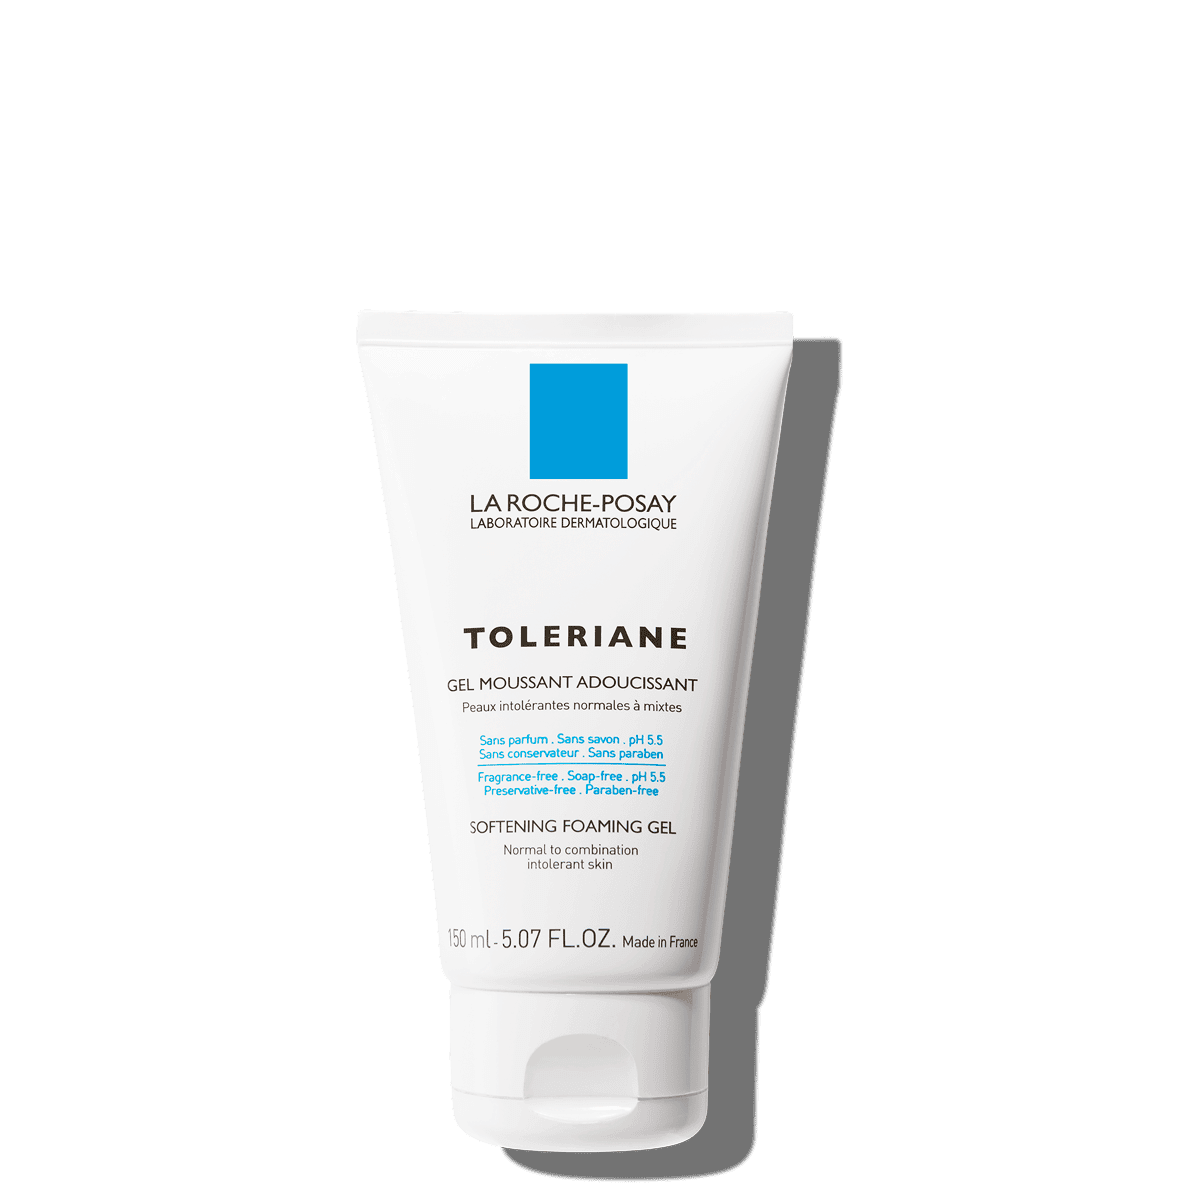 La Roche Posay ProductPage Sensitive Allergic Toleriane Foaming Gel 15